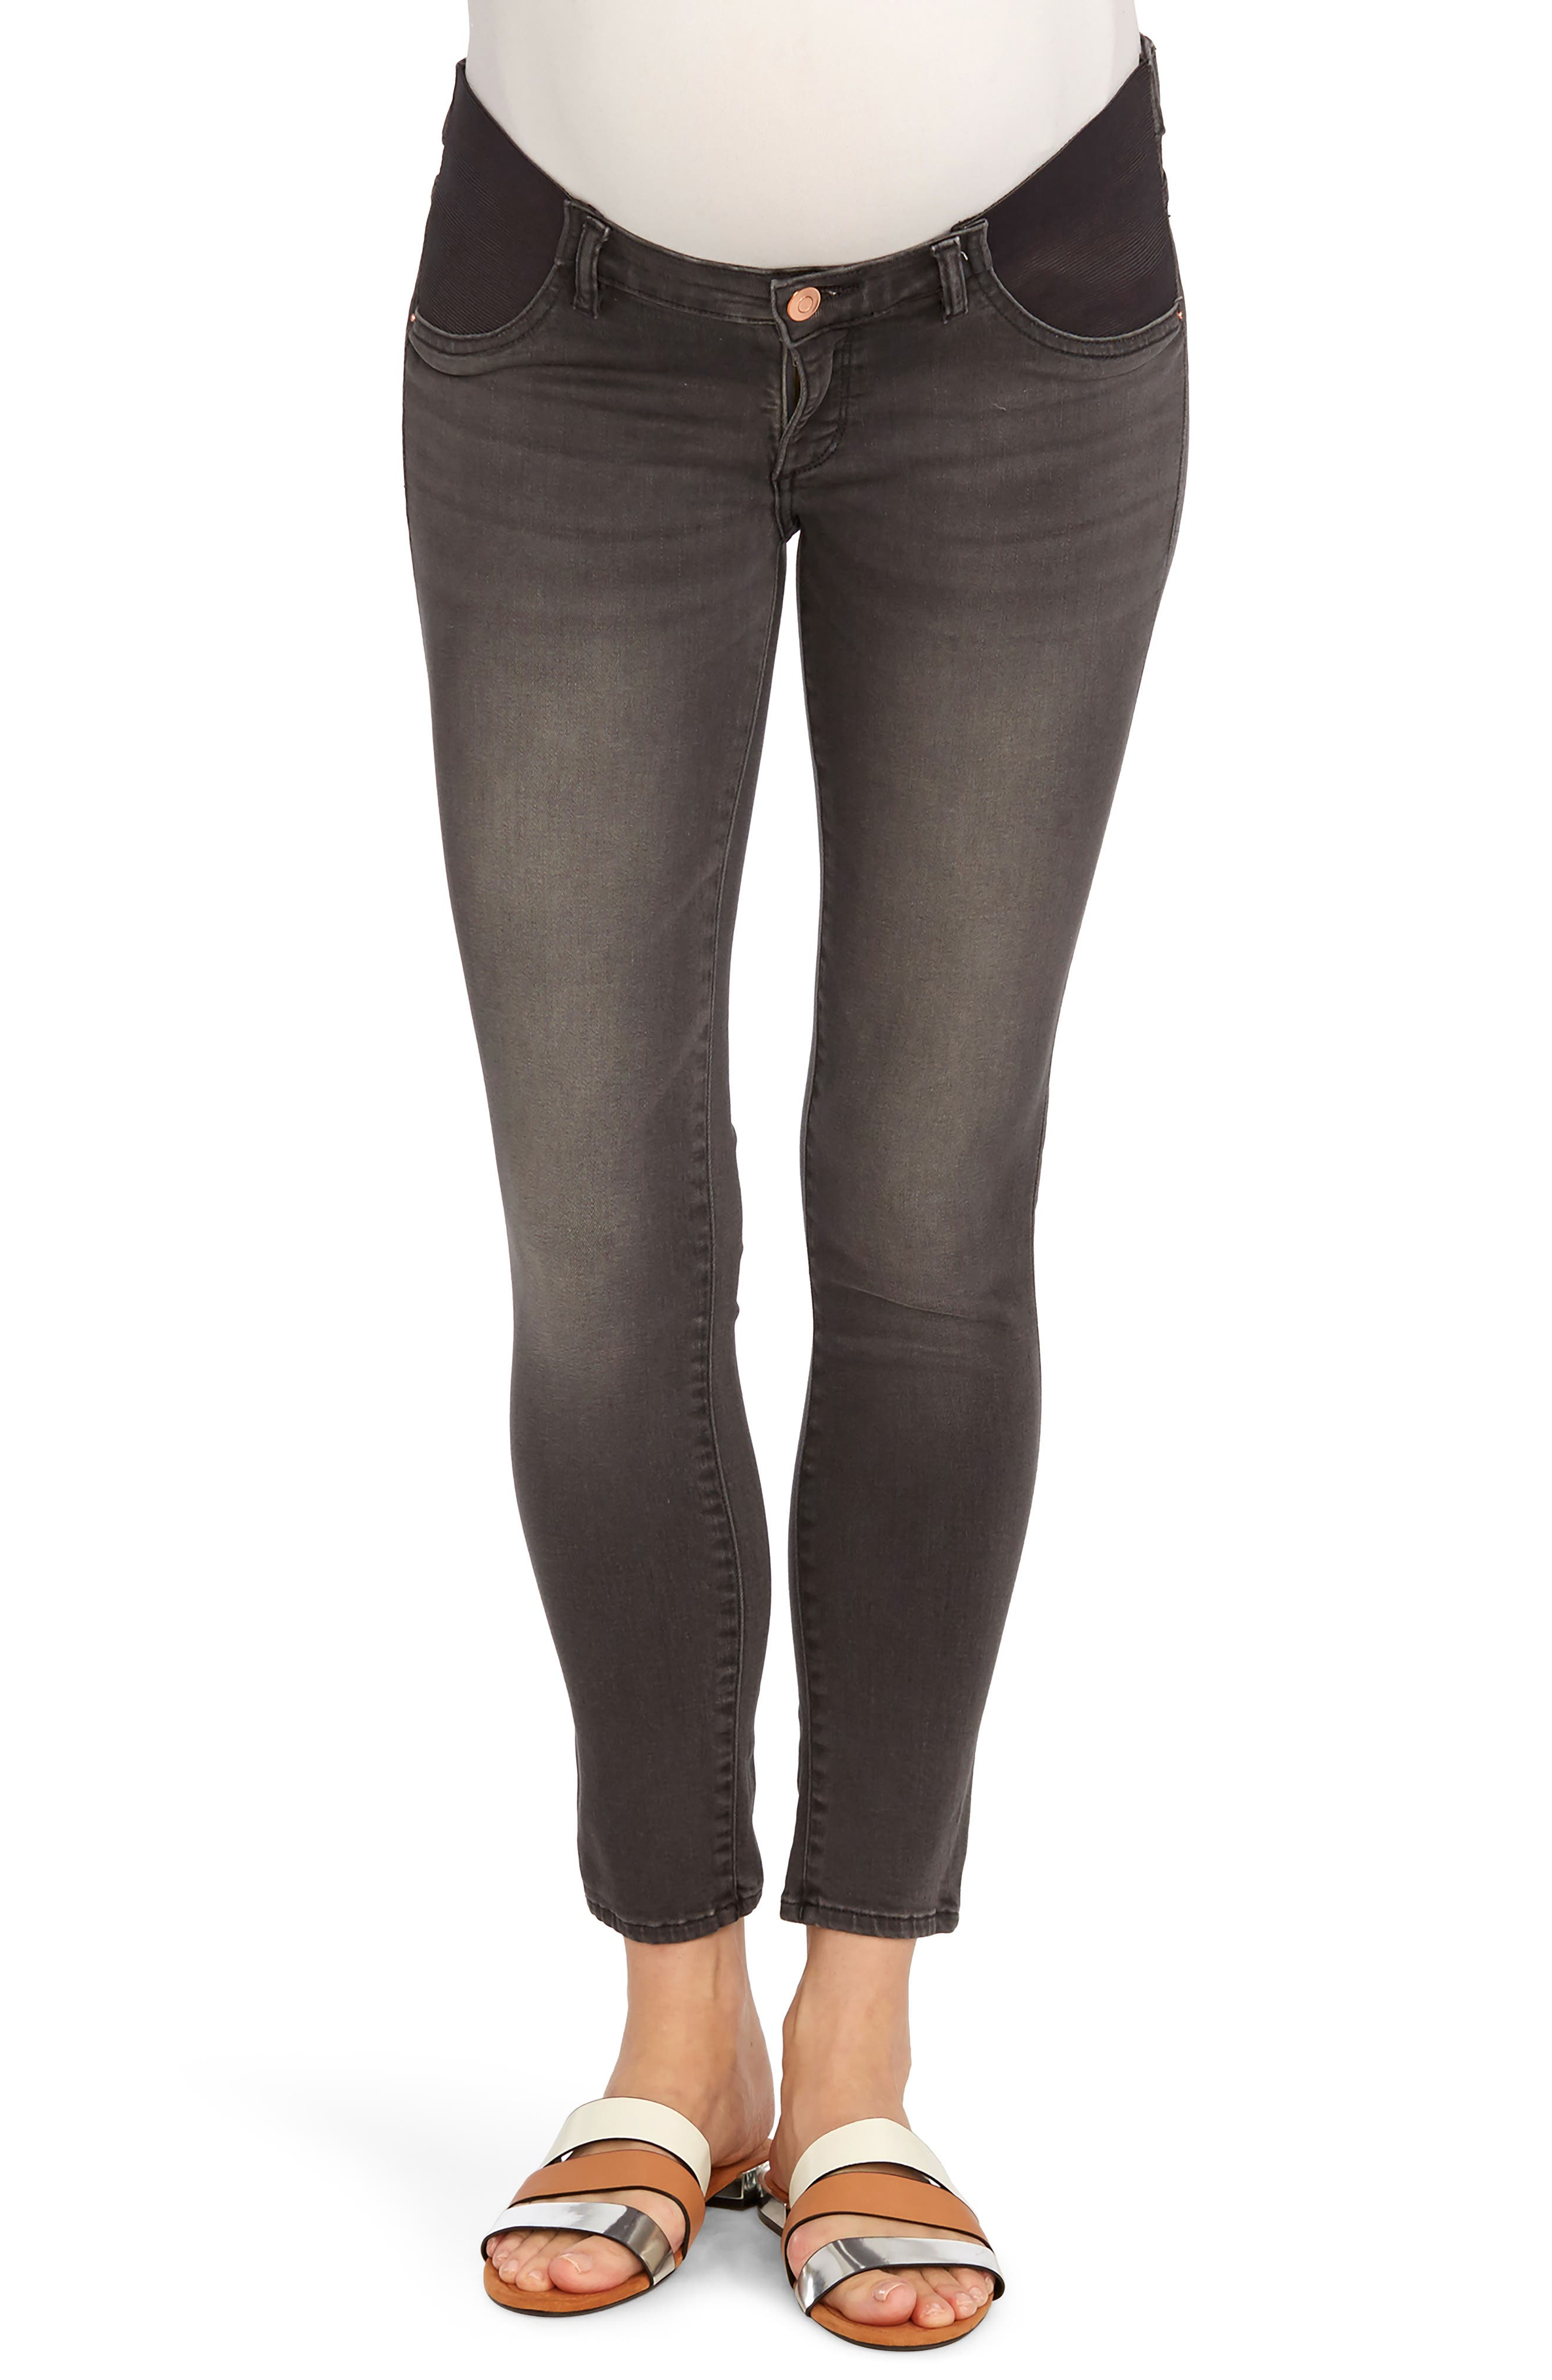 Main Image - Rosie Pope x DL1961 Ankle Skinny Maternity Jeans (Wickham)